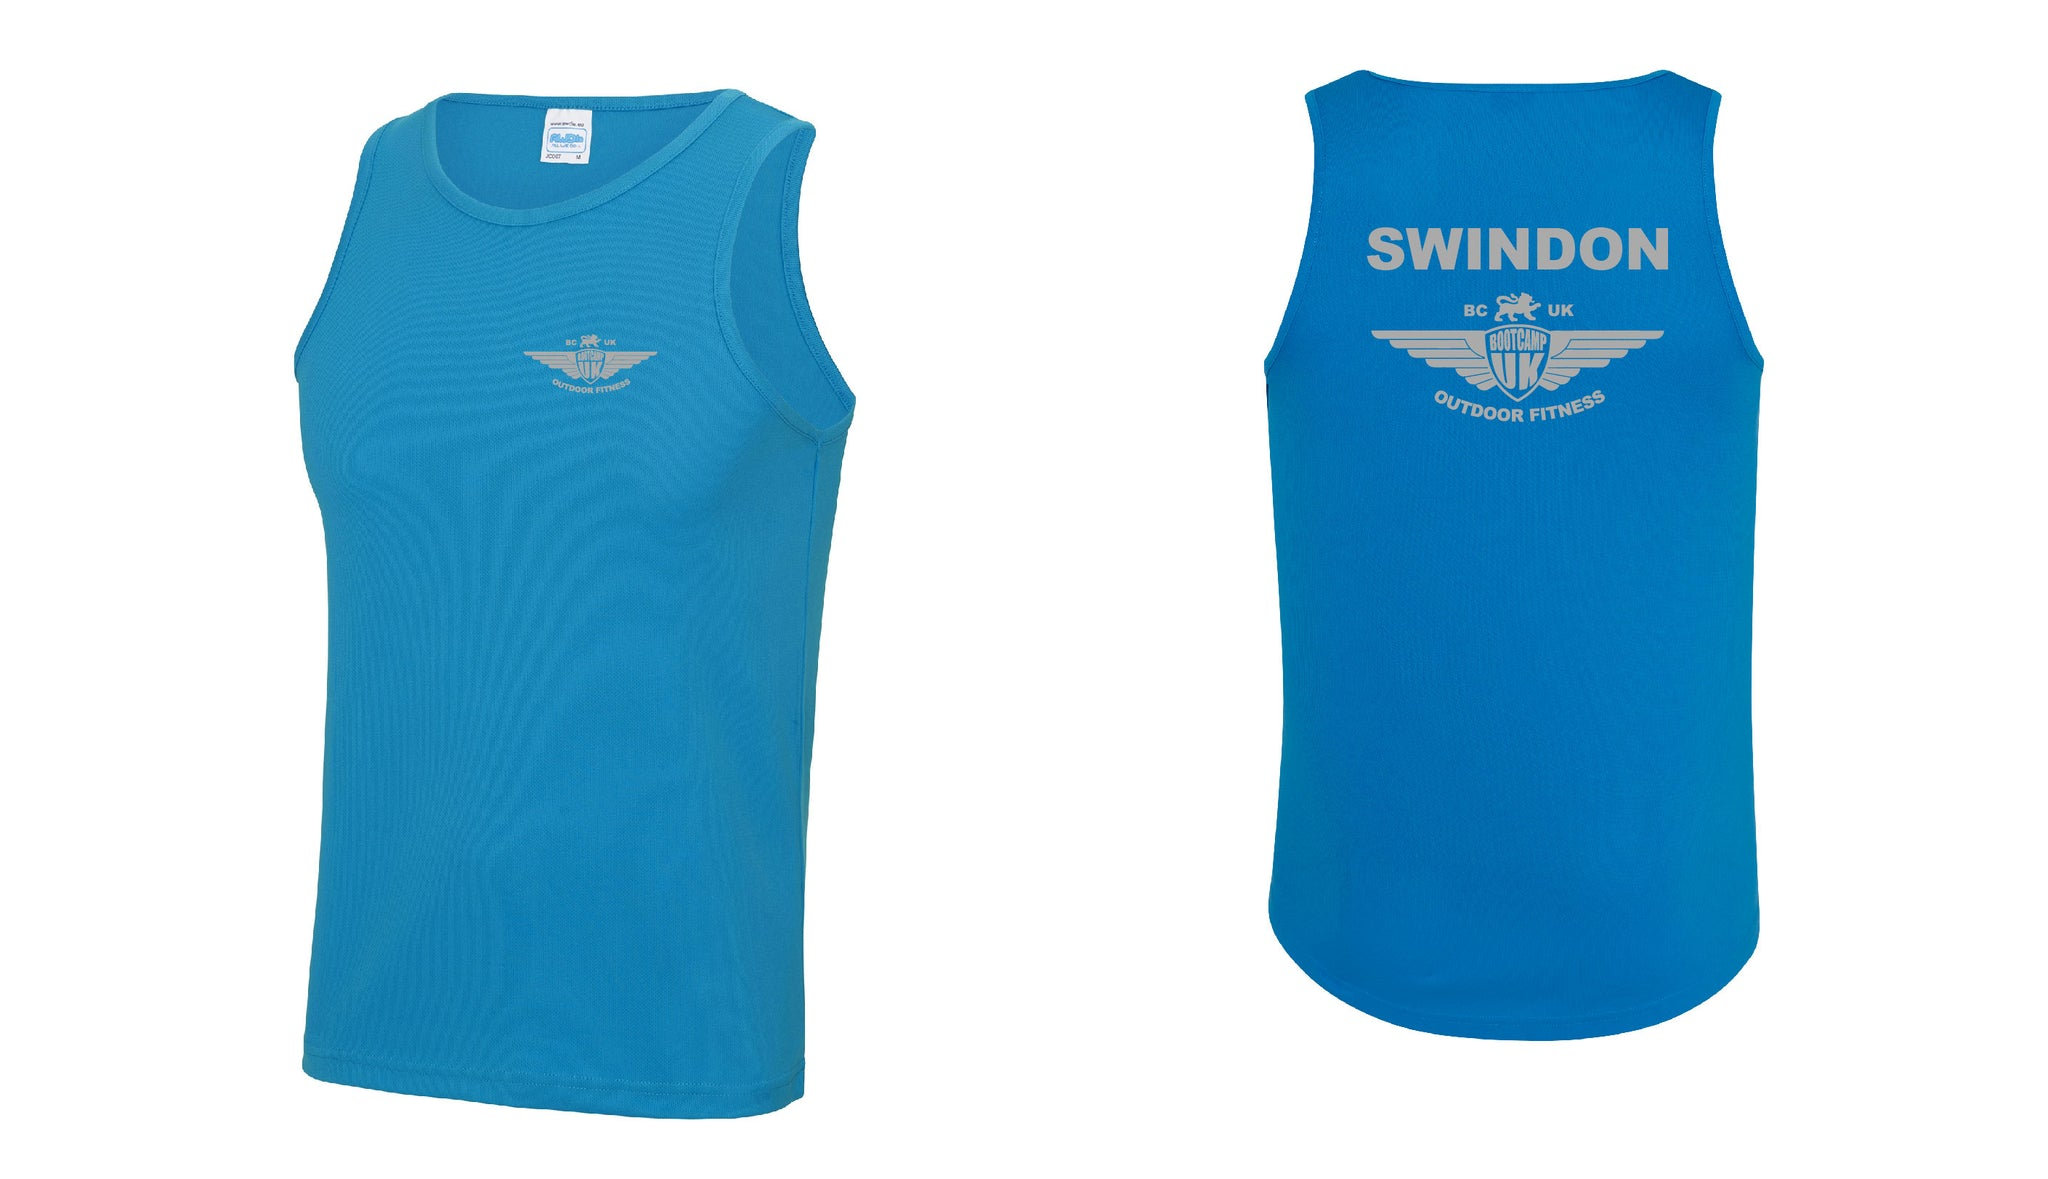 Swindon Mens Vest